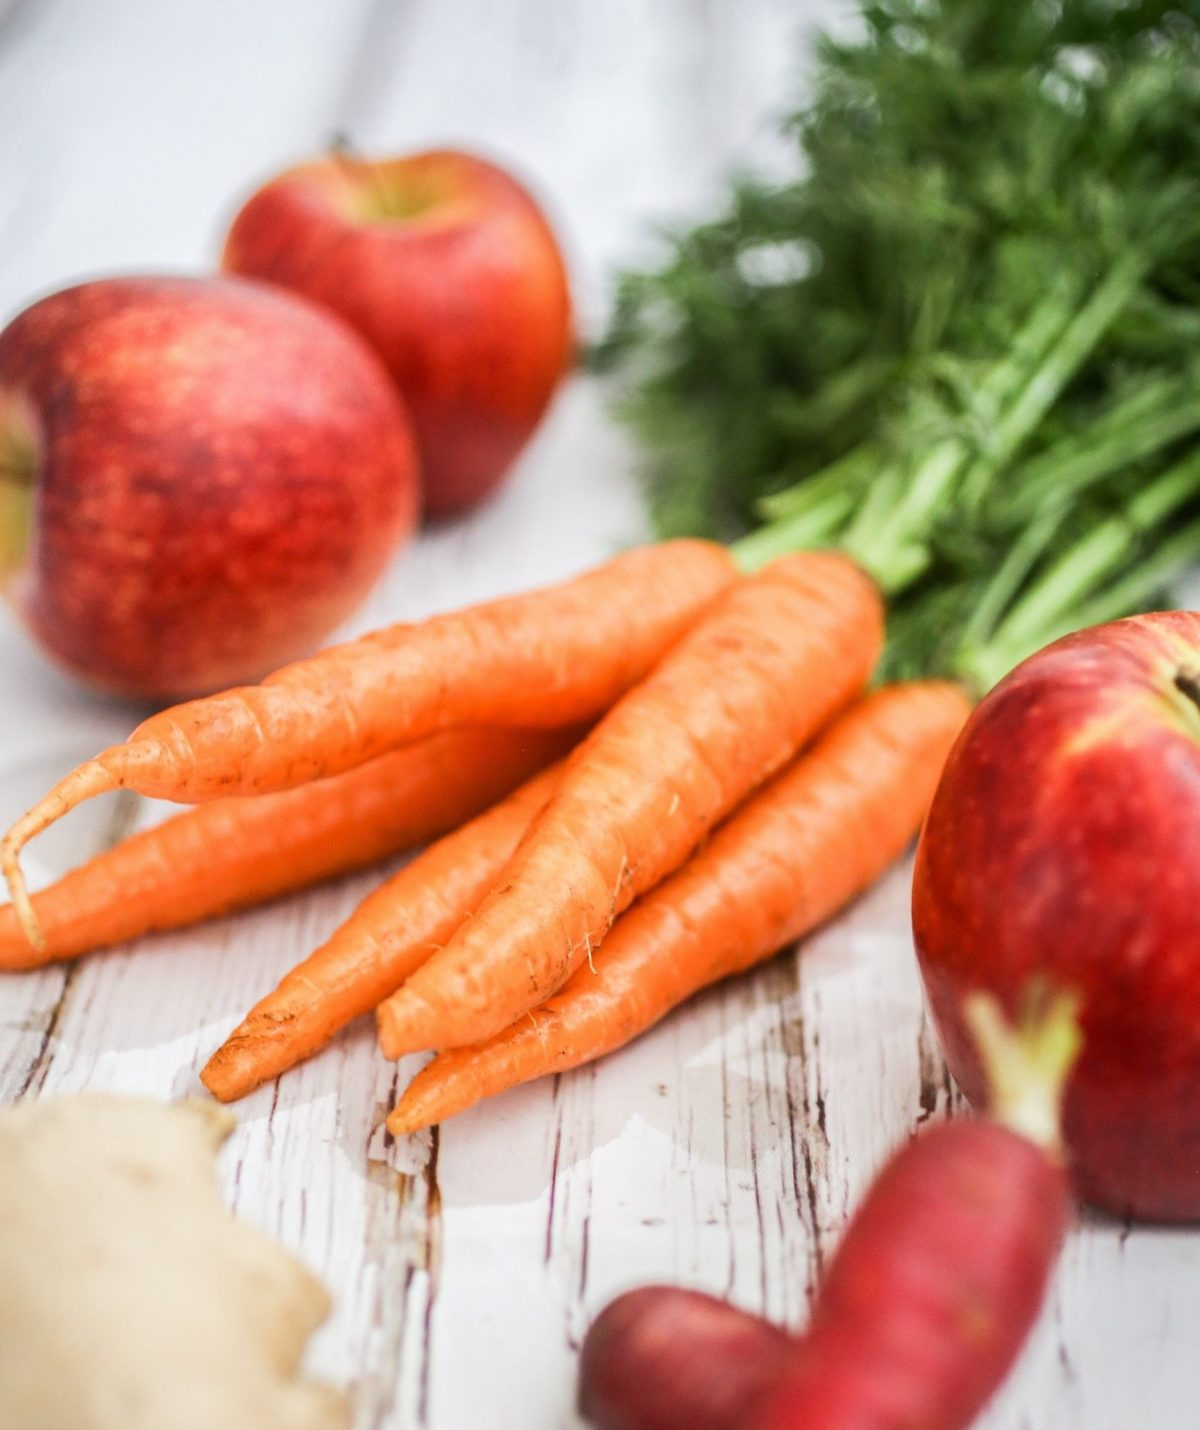 What is the first thing to eat after fasting apple or carrot